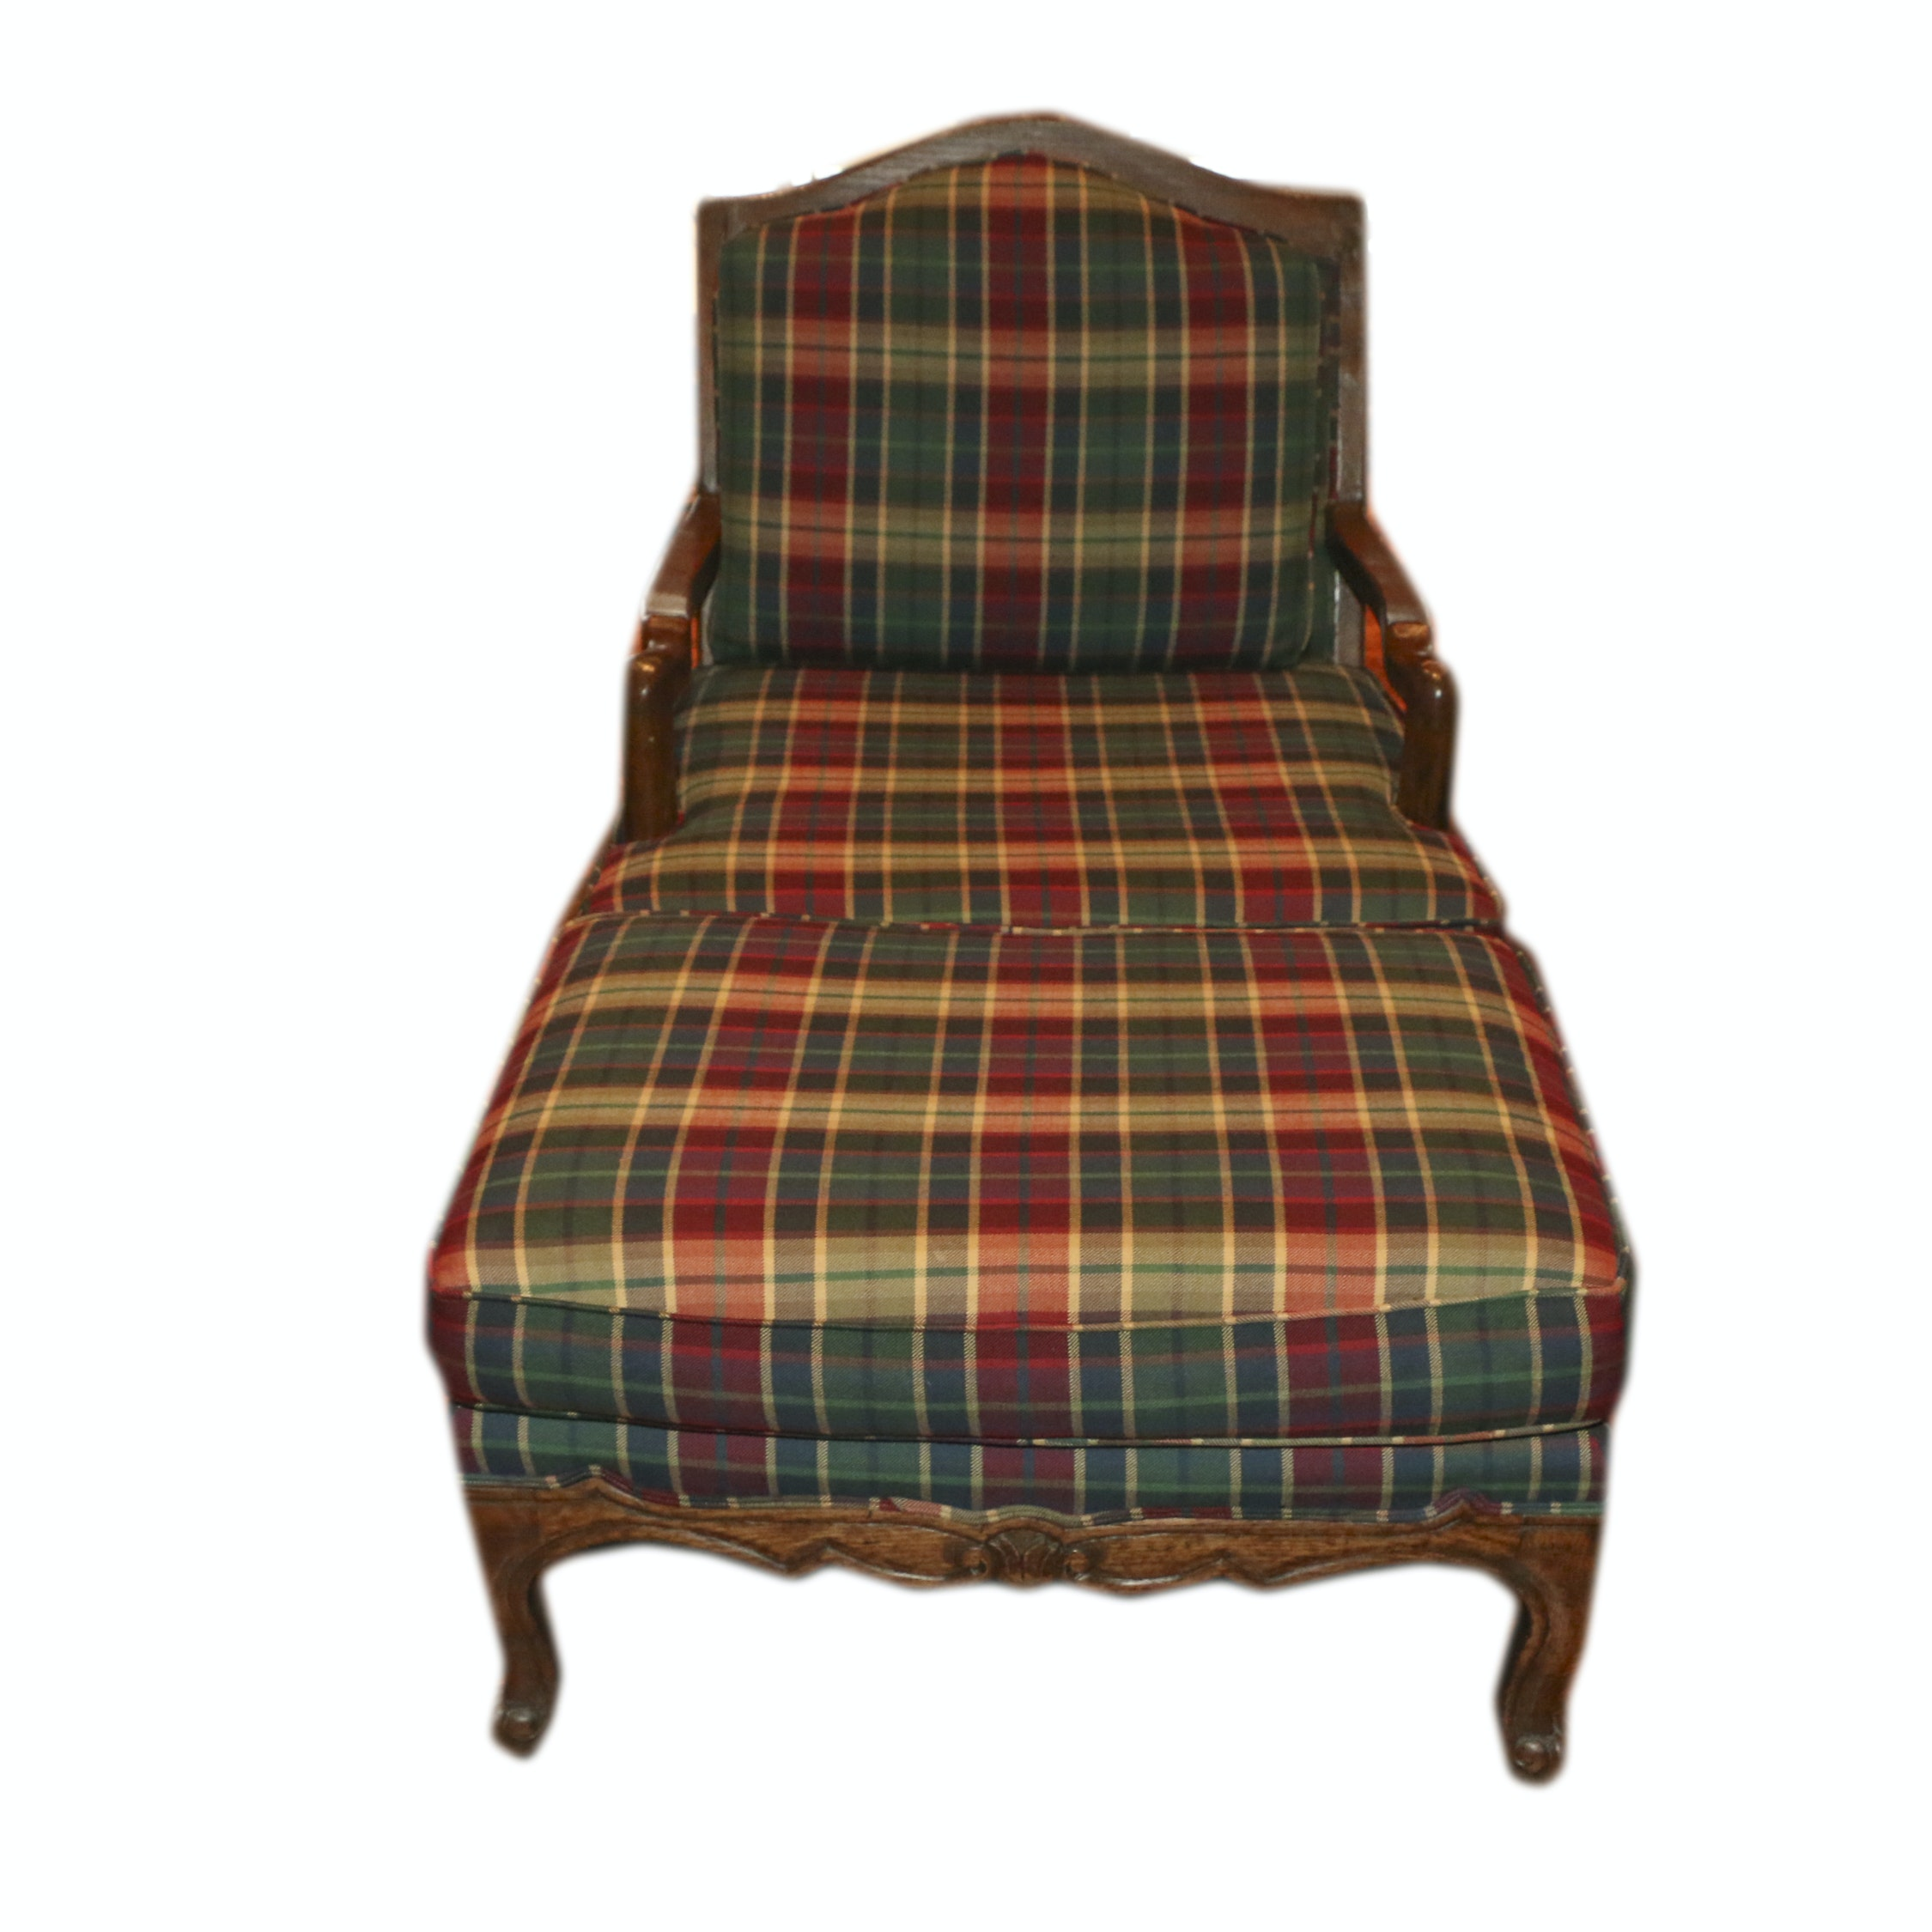 French Provincial Style Plaid-Upholstered Wooden Bergere Chair and Ottoman